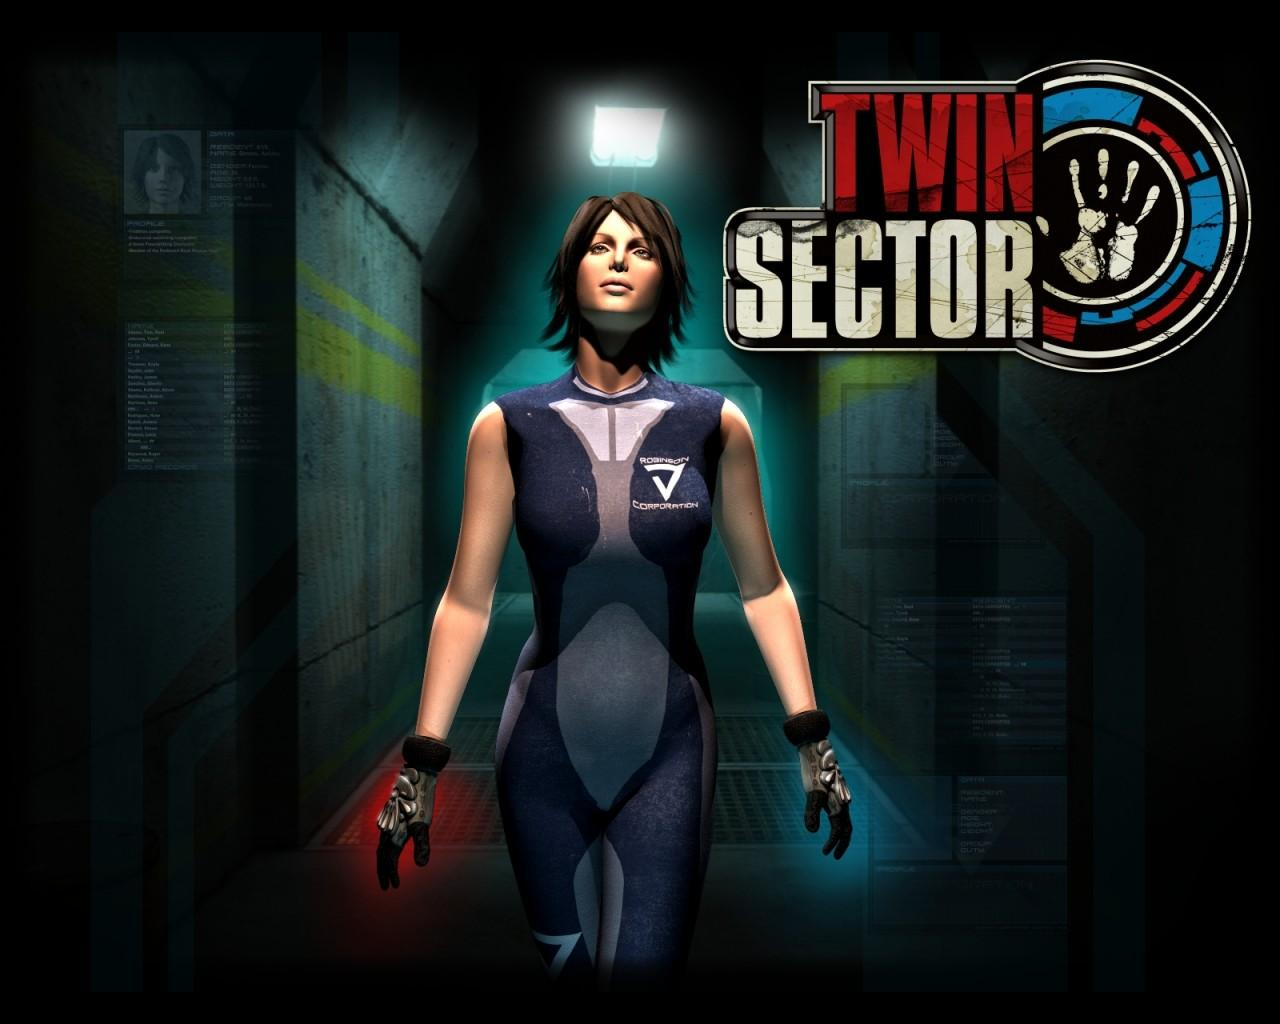 ���� Twin Sector 1280x1024